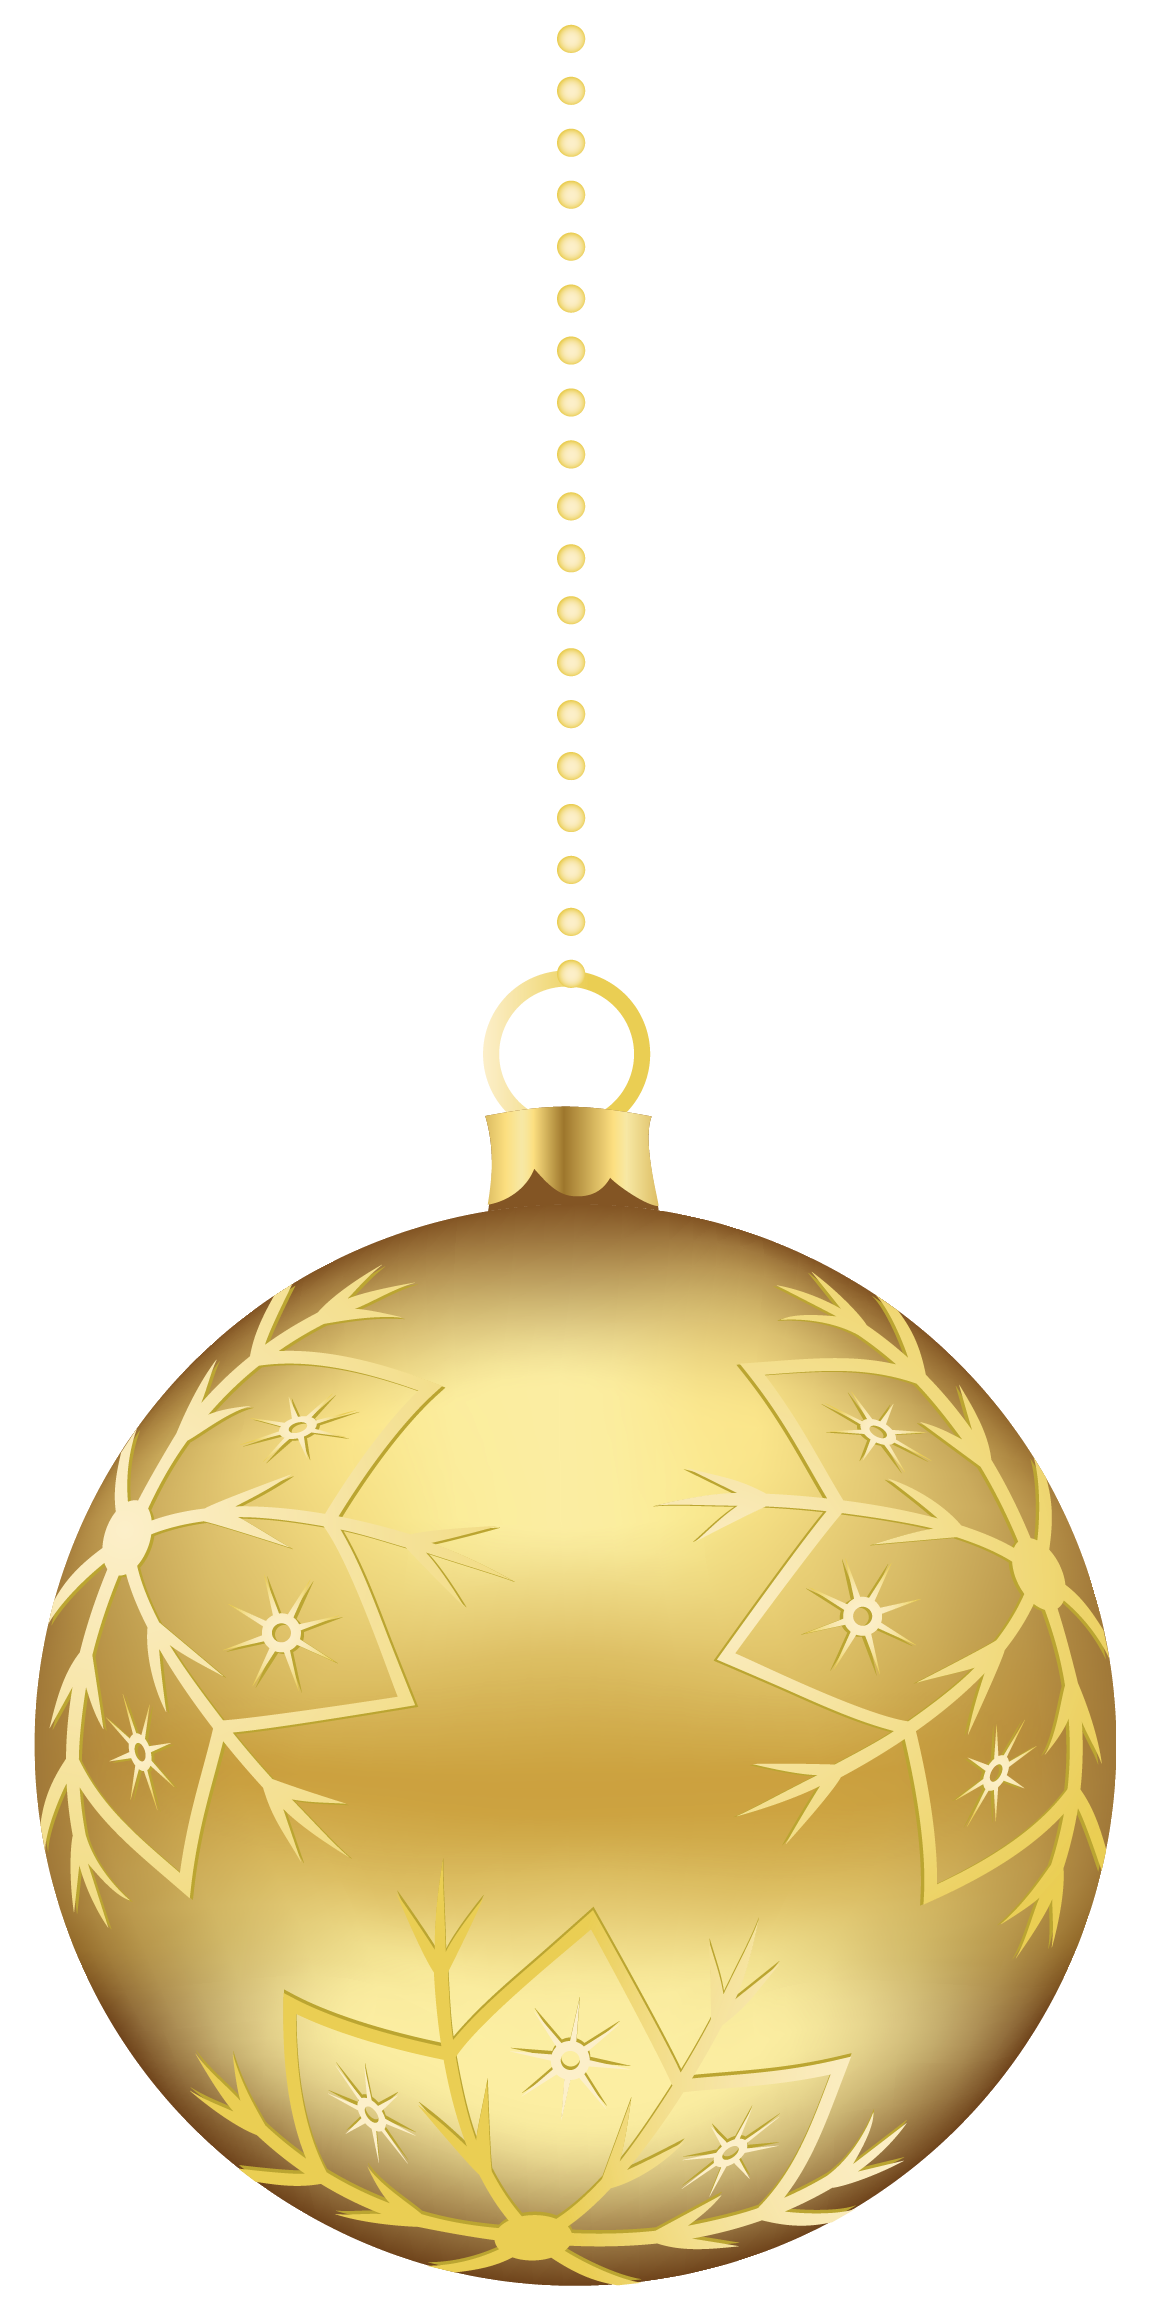 CHRISTMAS GOLD AND RED SWIRL ORNAMENT CLIP ART Christmas